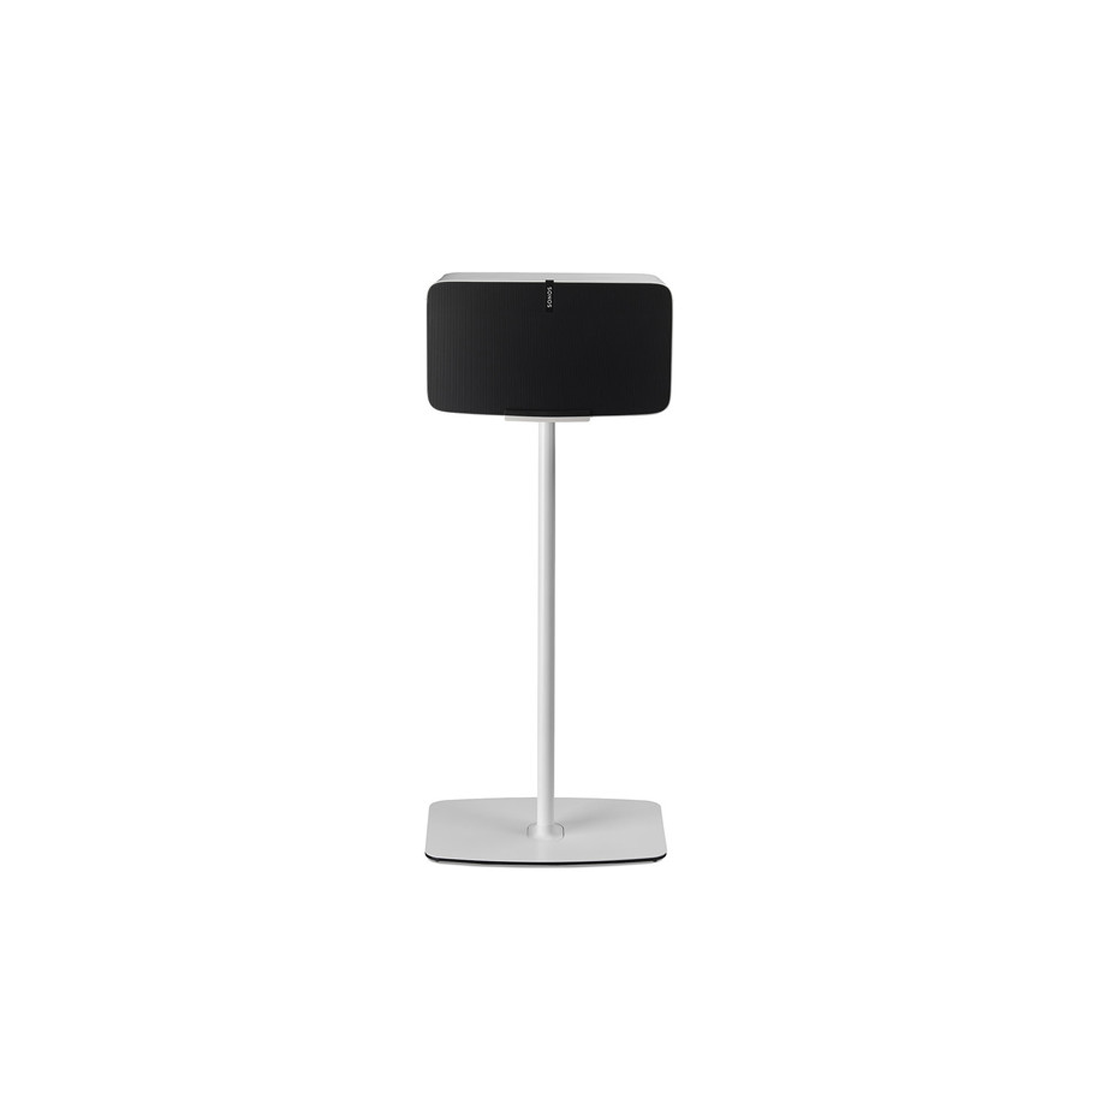 Sonos One Stand Pair